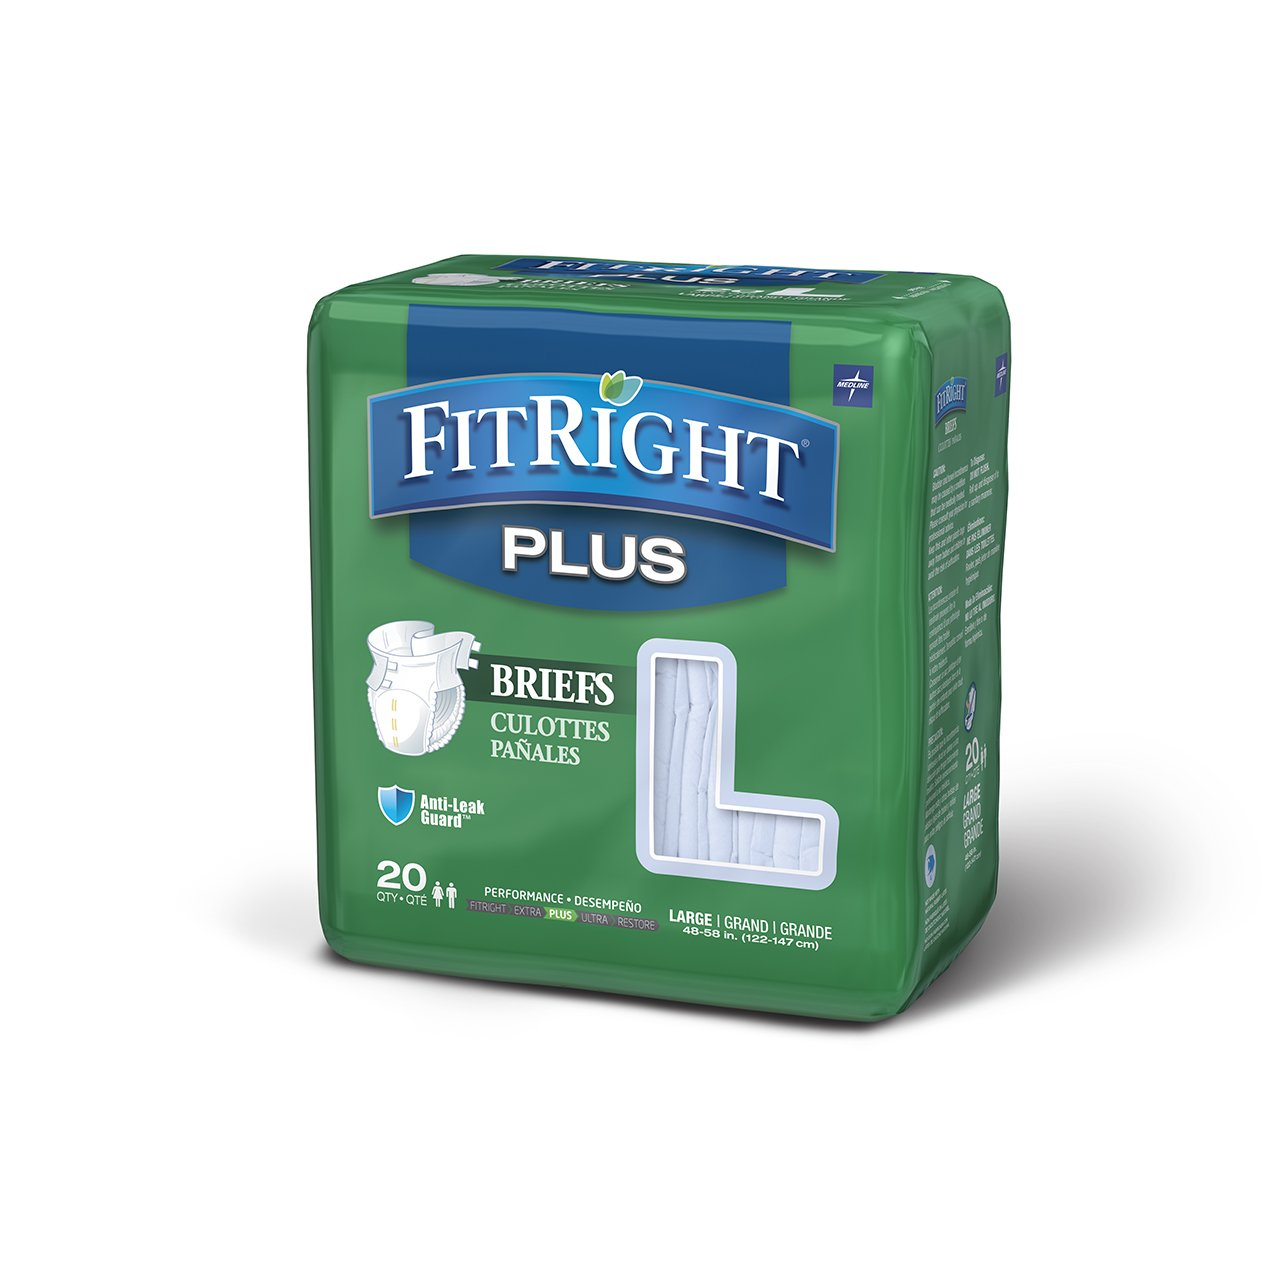 FitRight Plus Adult Diapers, Disposable Incontinence Briefs with Tabs, Moderate Absorbency, Large, 48''-58'', 4 packs of 20 (80 total)